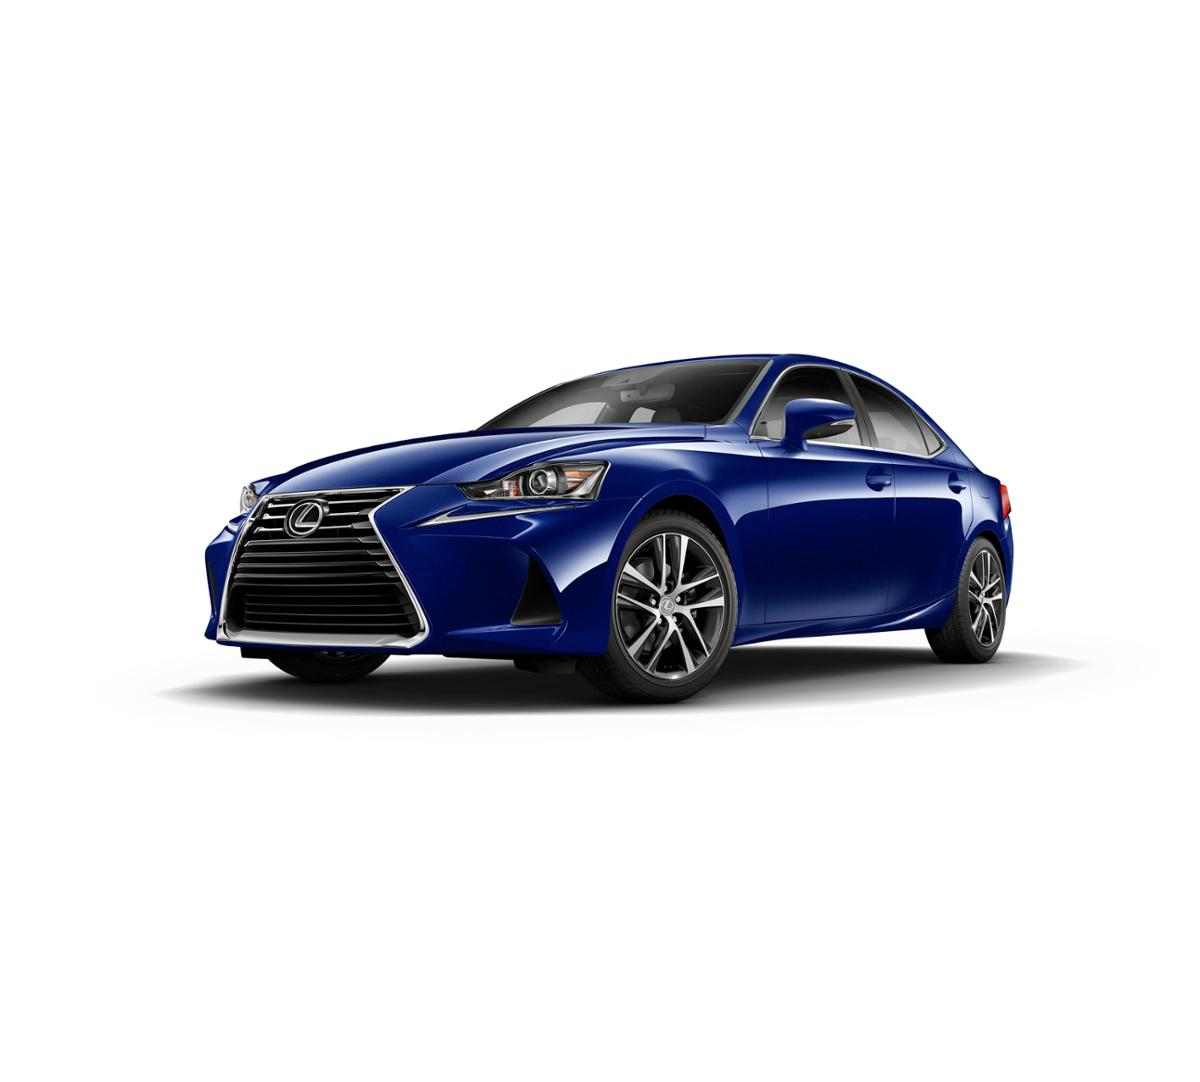 2018 Lexus IS 300 Vehicle Photo in Bedford, NH 03110